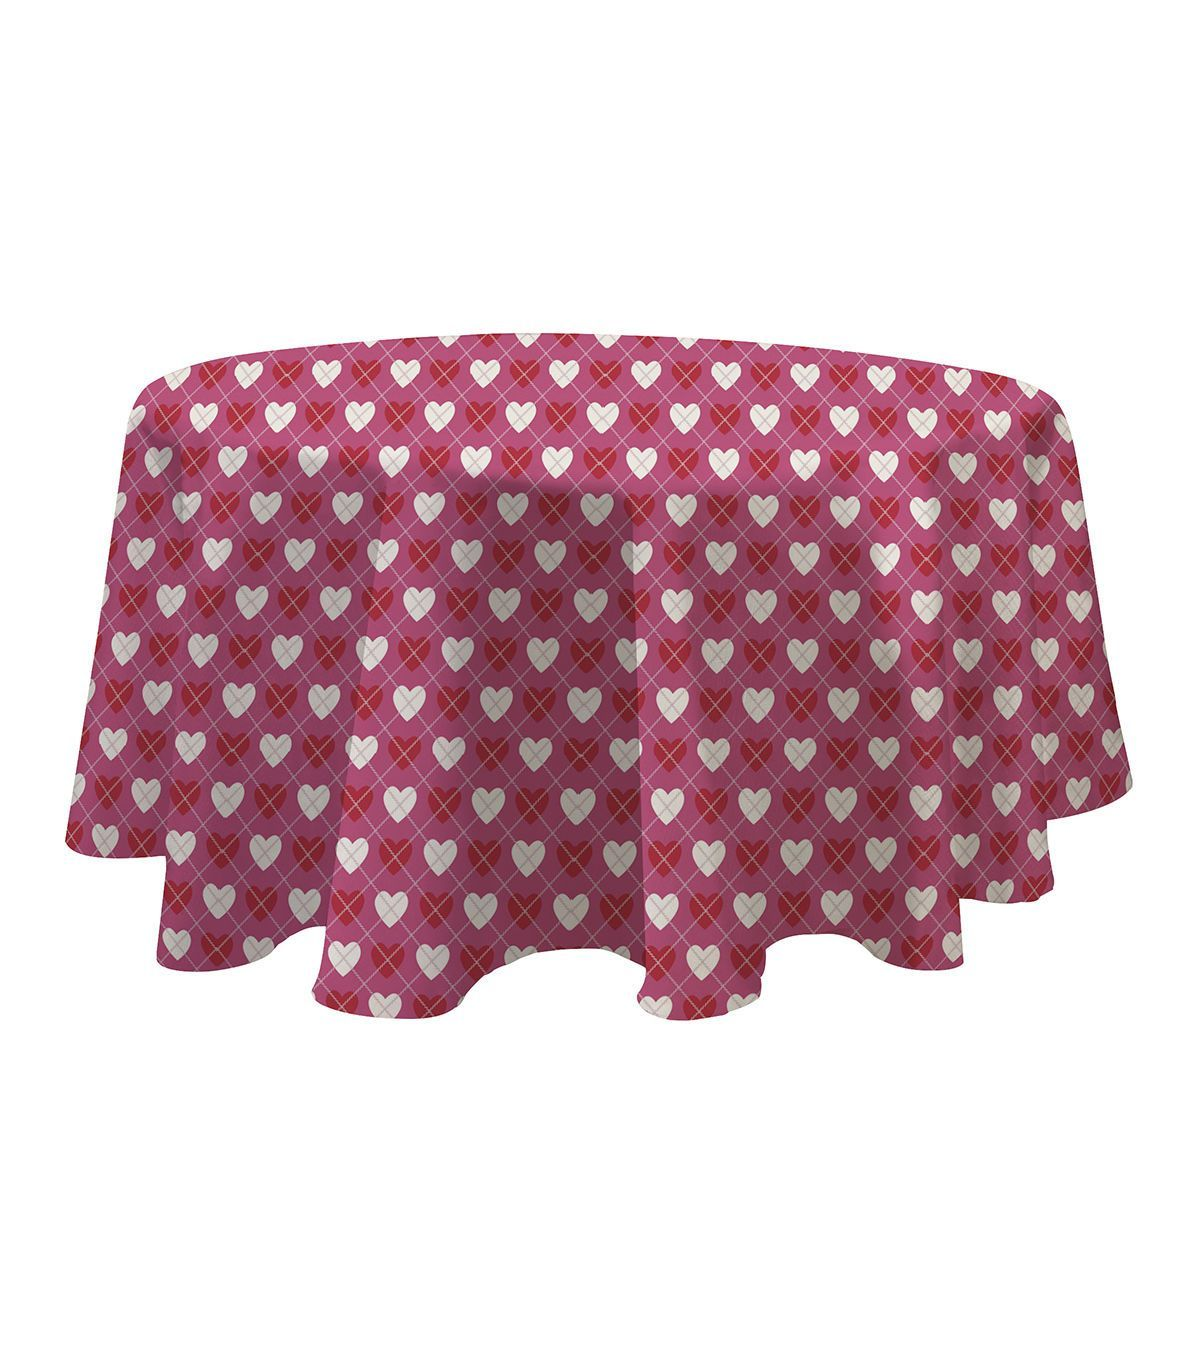 Valentineu0027s Day 60u0027u0027 Round PEVA Tablecloth Very Valentines